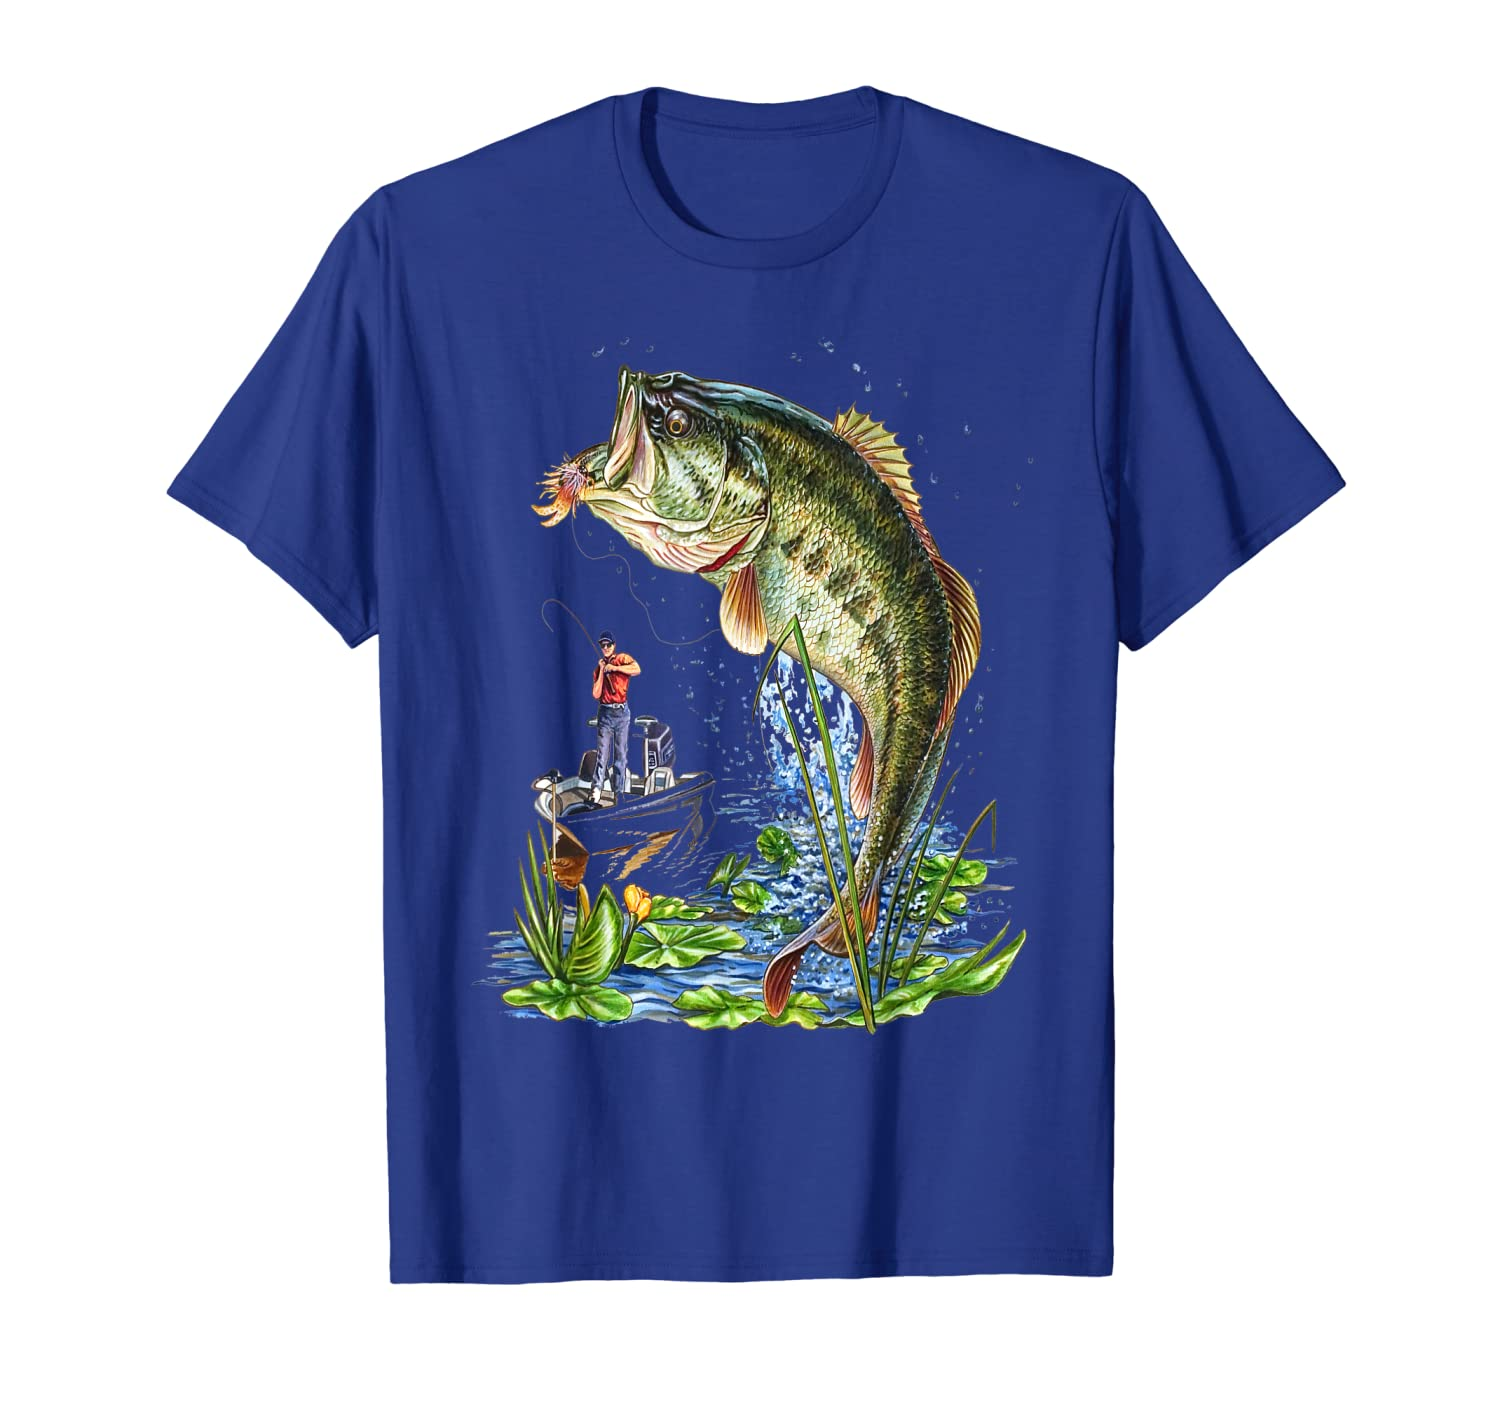 Fishing Graphic T-Shirt Large Mouth Bass Fish Gift T-Shirt Unisex Tshirt